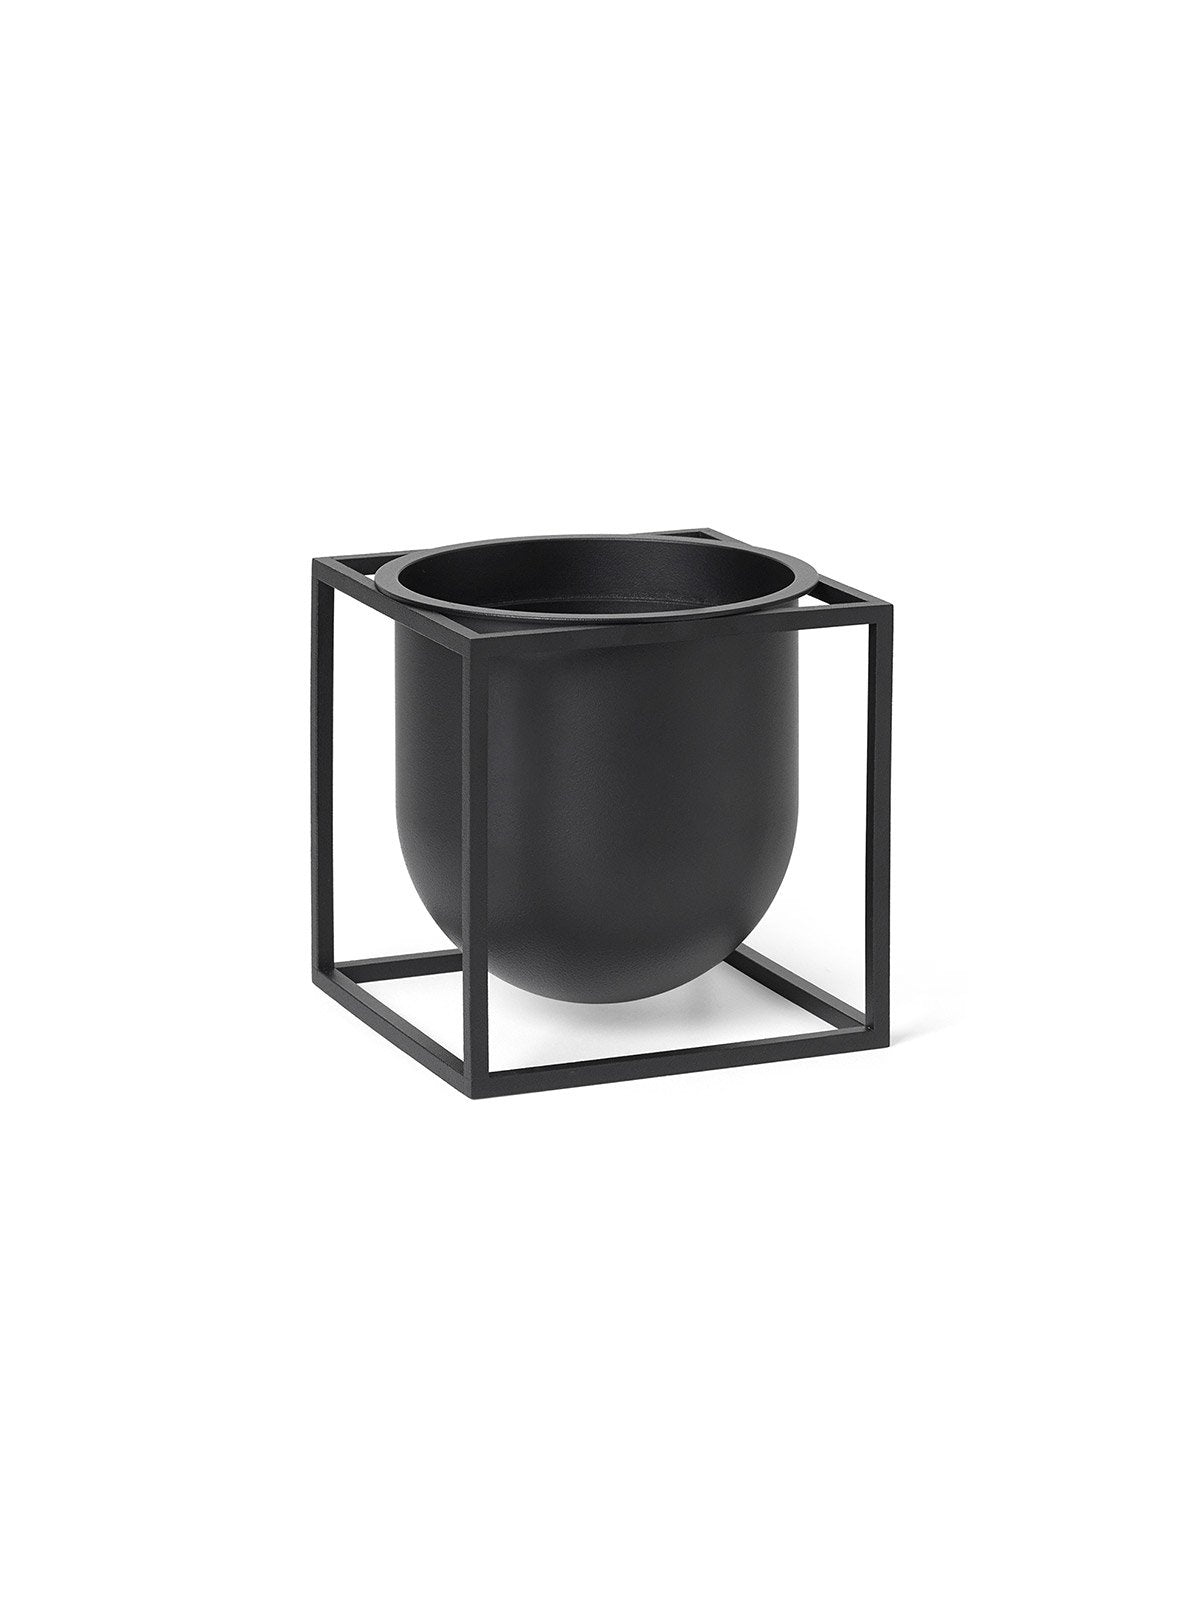 kubusflowerpot14_black_product1_miljuu.com_1302-009